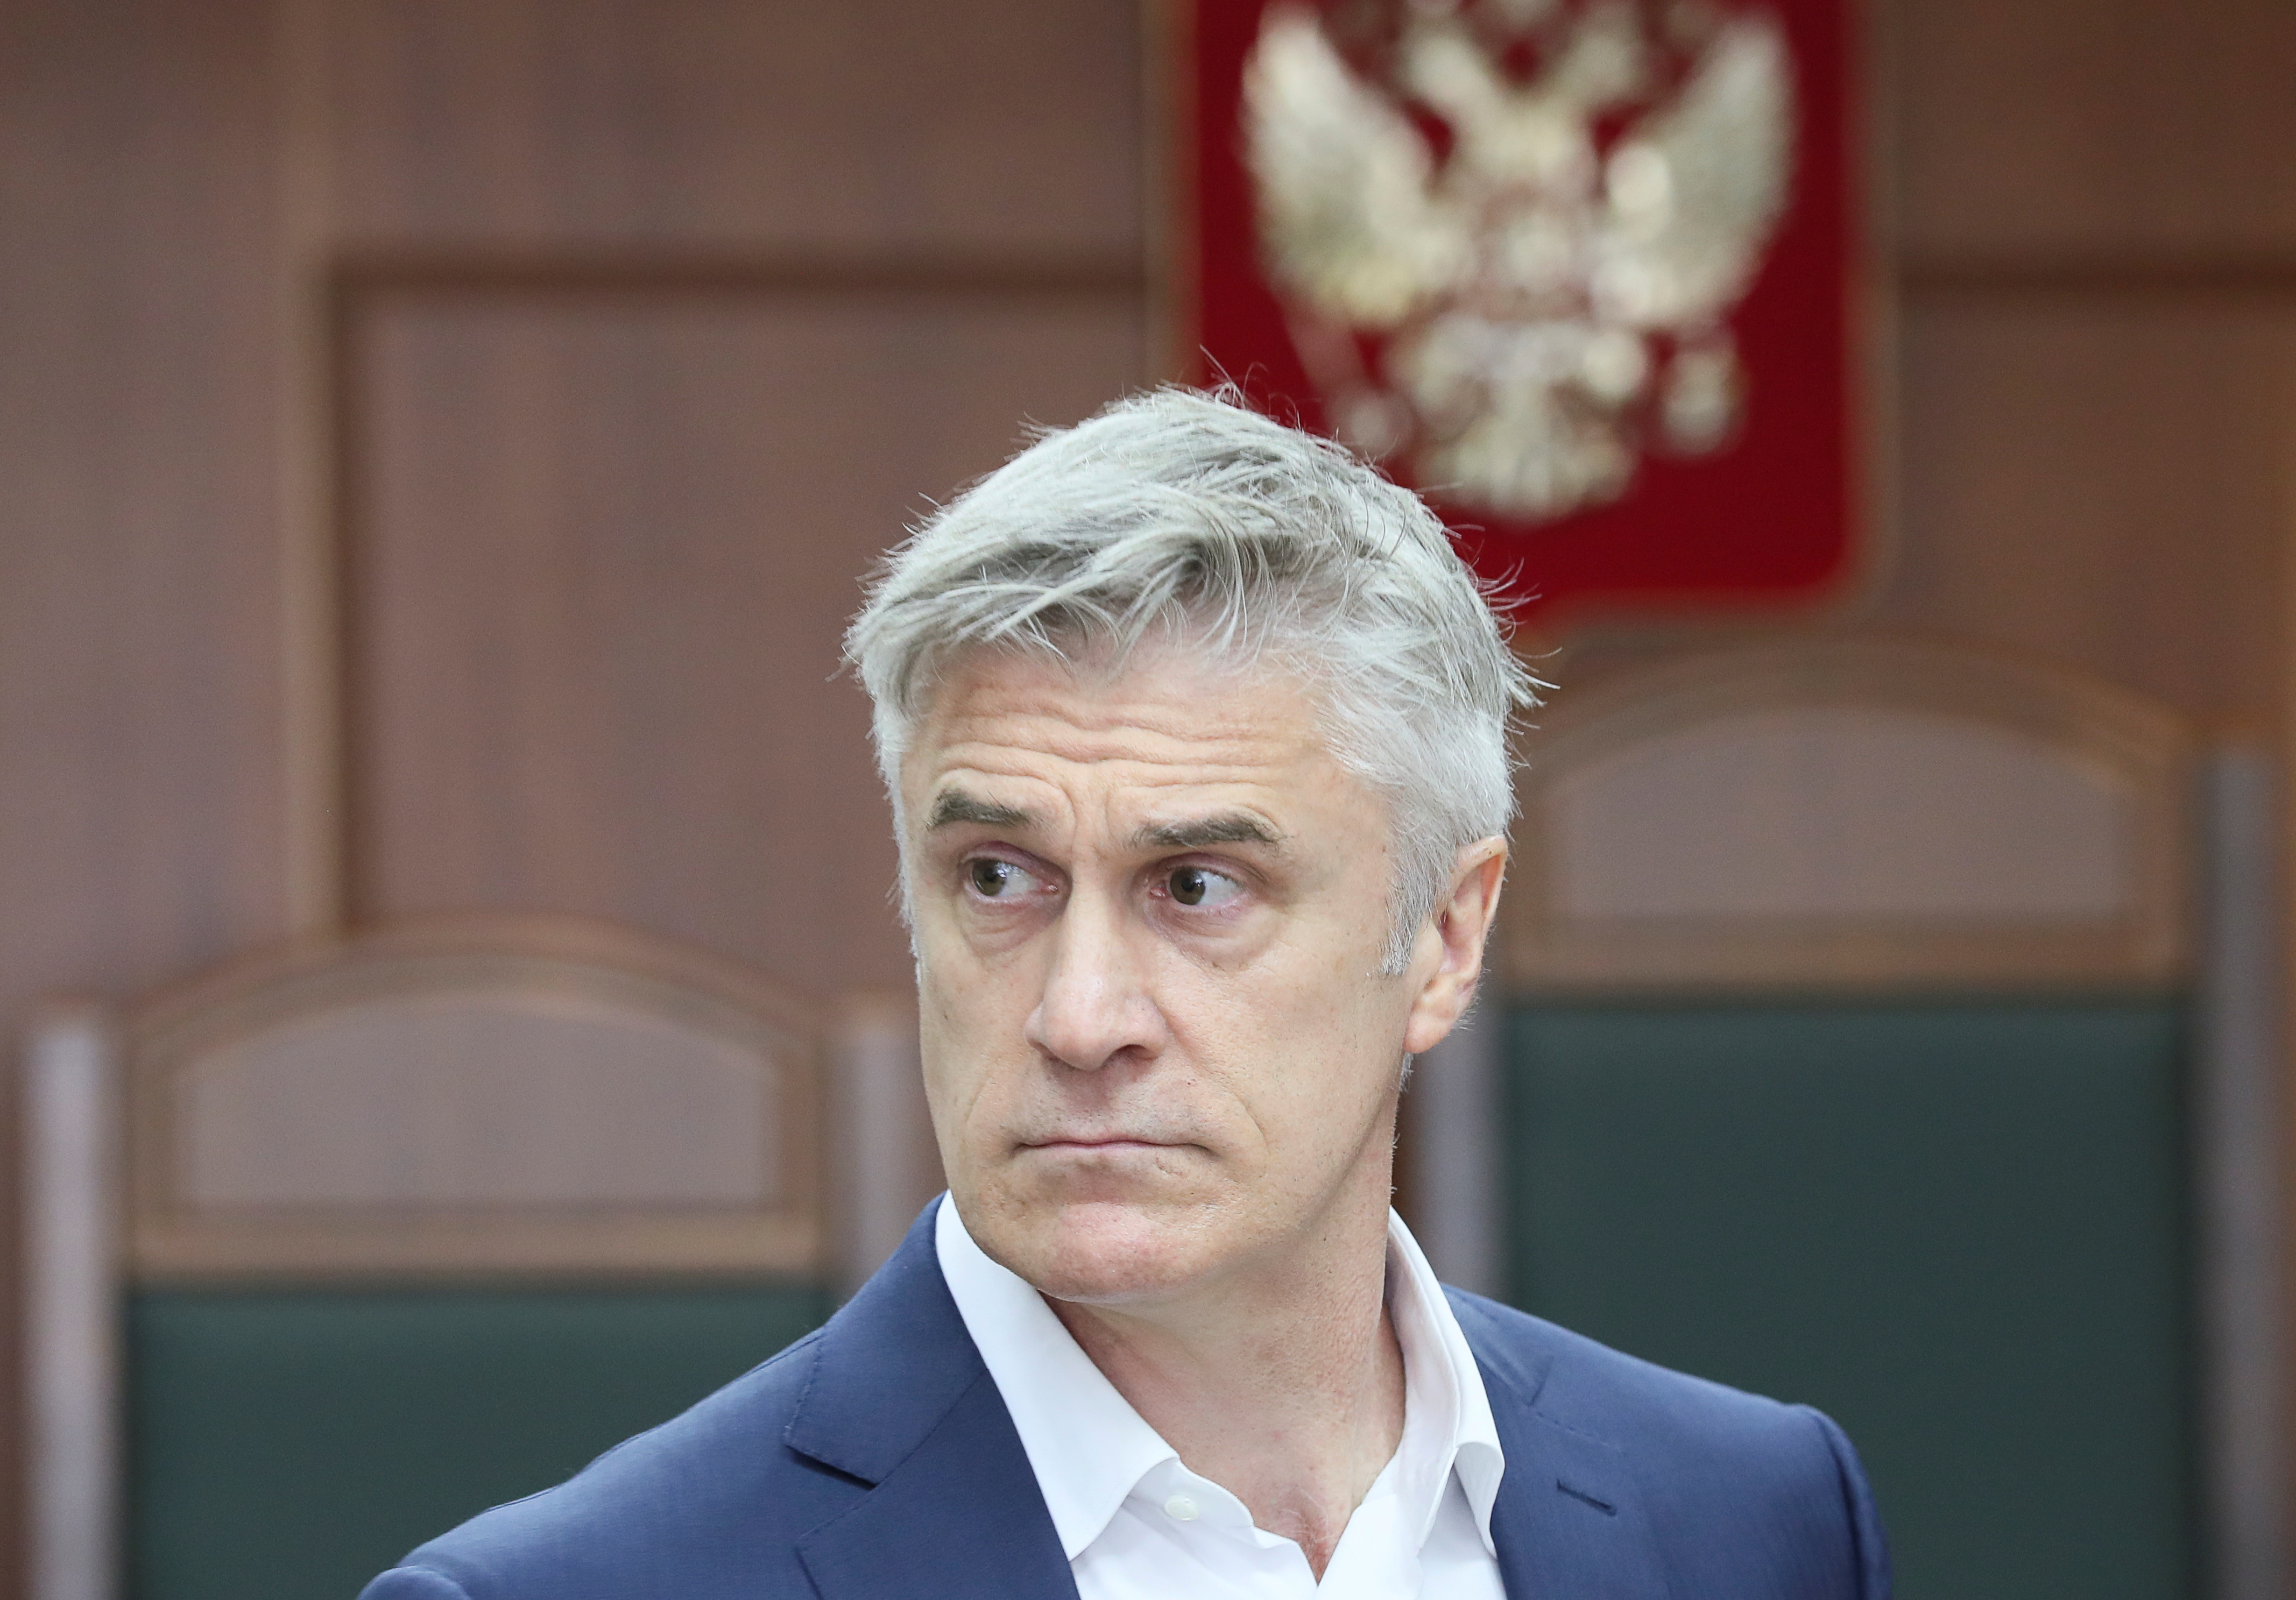 U.S. investor and founder of the Baring Vostok private equity group Michael Calvey, who is under house arrest on suspicion of fraud, attends a court hearing in Moscow, Russia August 15, 2019. REUTERS/Evgenia Novozhenina